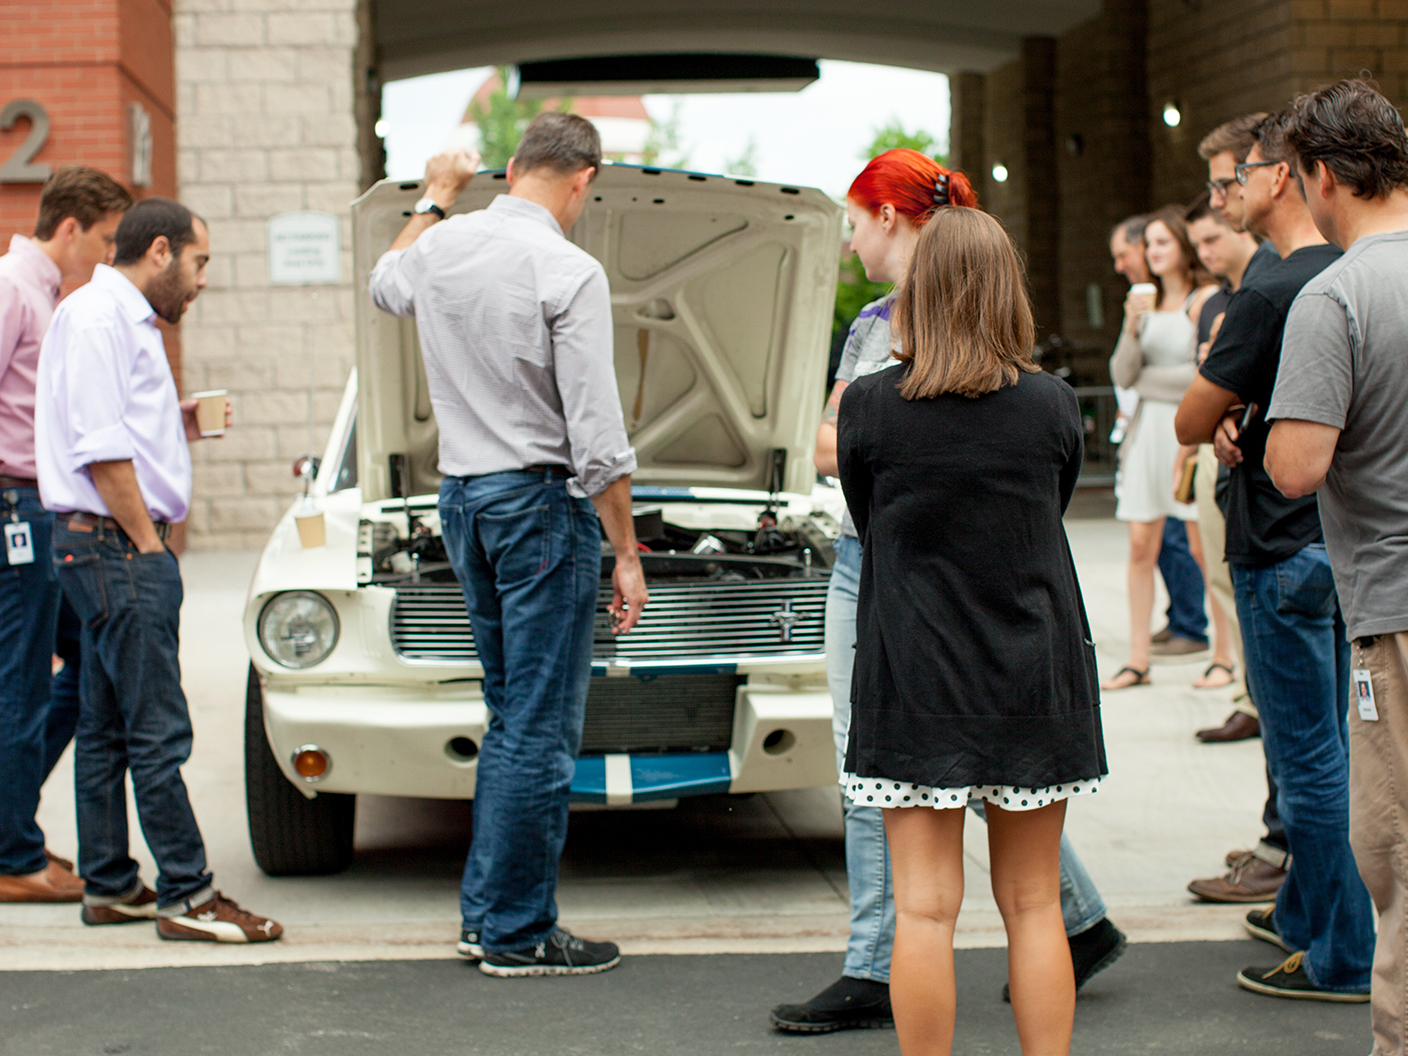 A group of collector car enthusiasts gather around a white Mustang with the hood popped up.